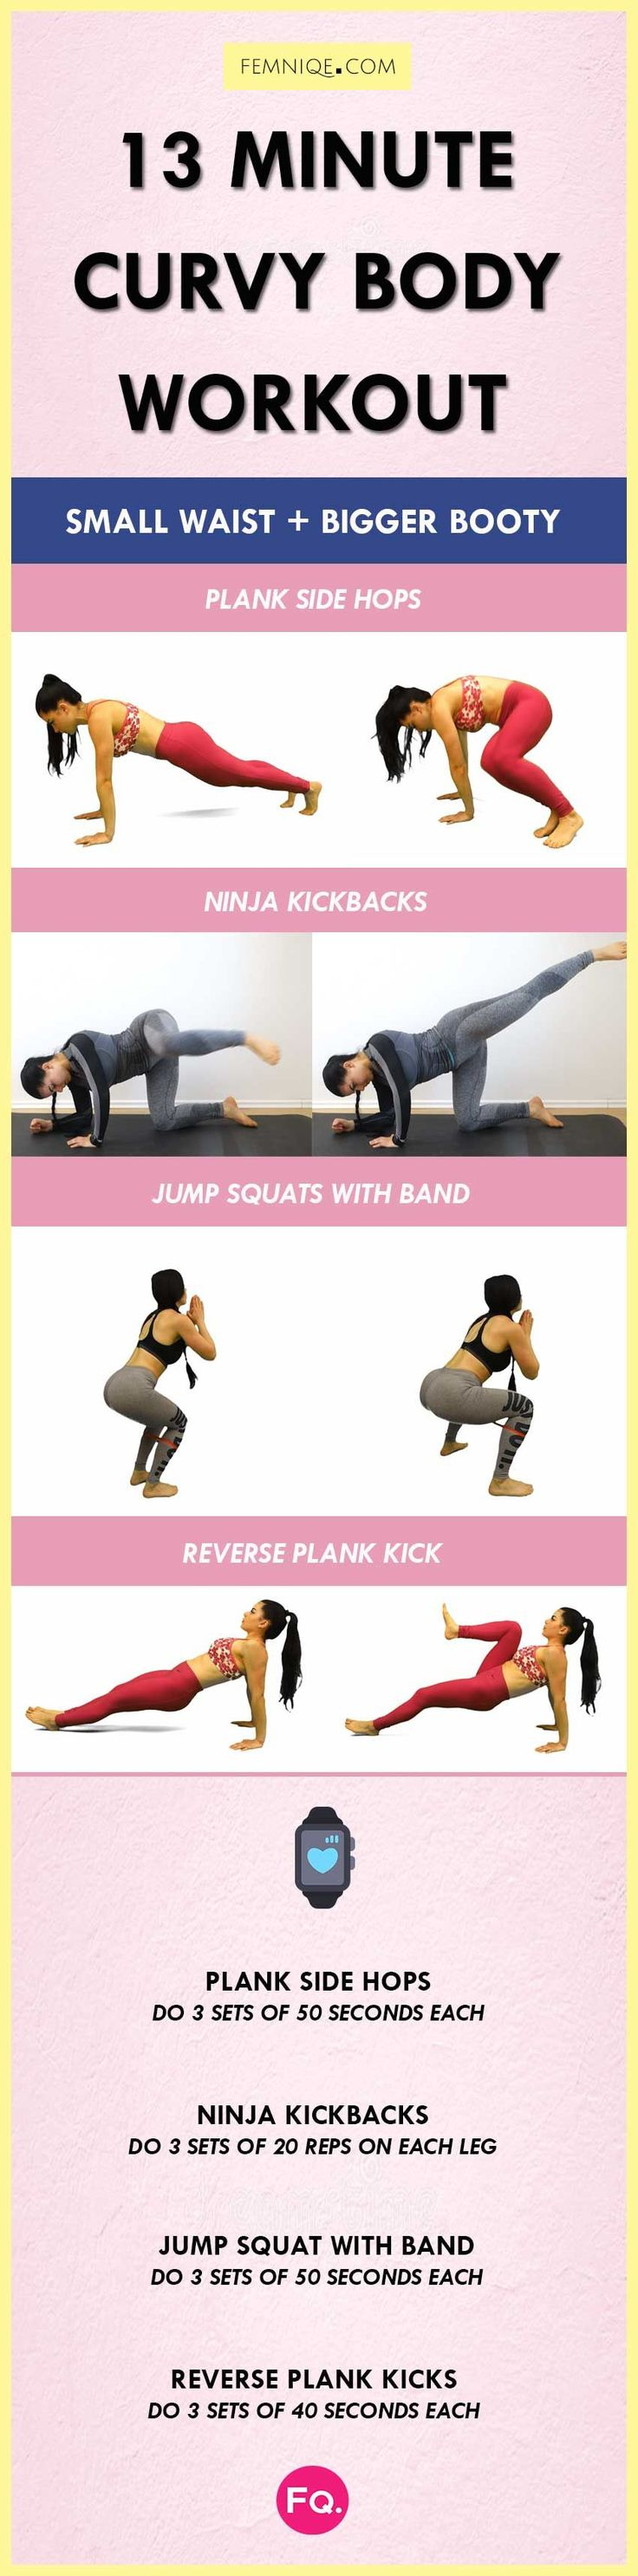 HOW TO GET A CURVY BODY WORKOUT #workoutmotivationgirlbikinibodies